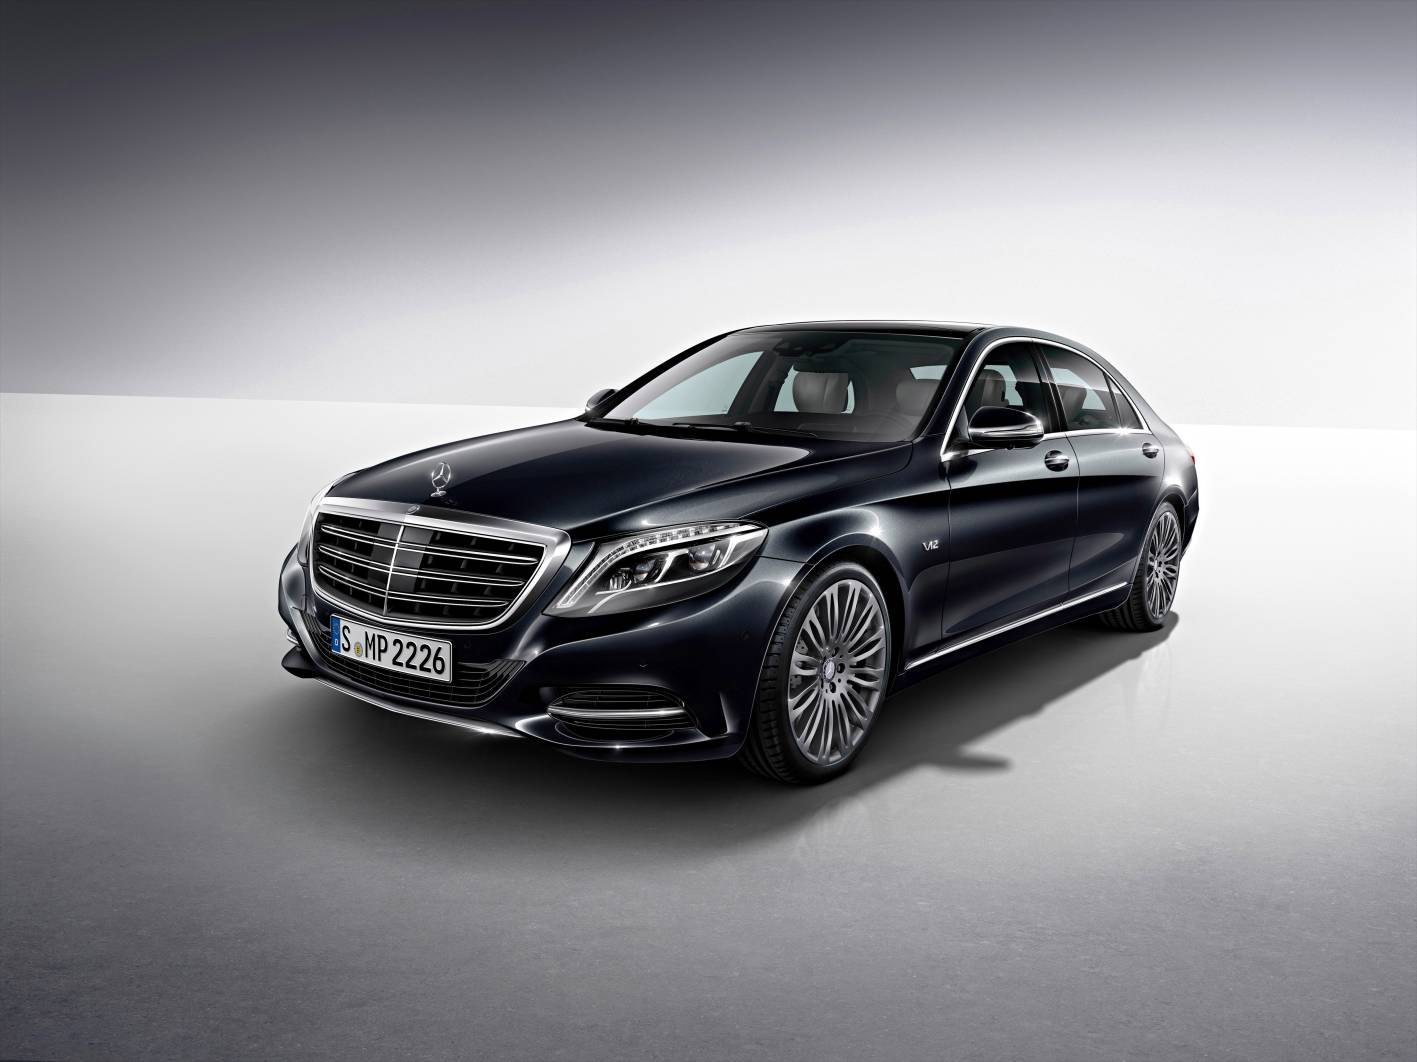 Even flagship Mercedes-Benz S-Class sales are circling the drain this century, despite massive price drop in real terms